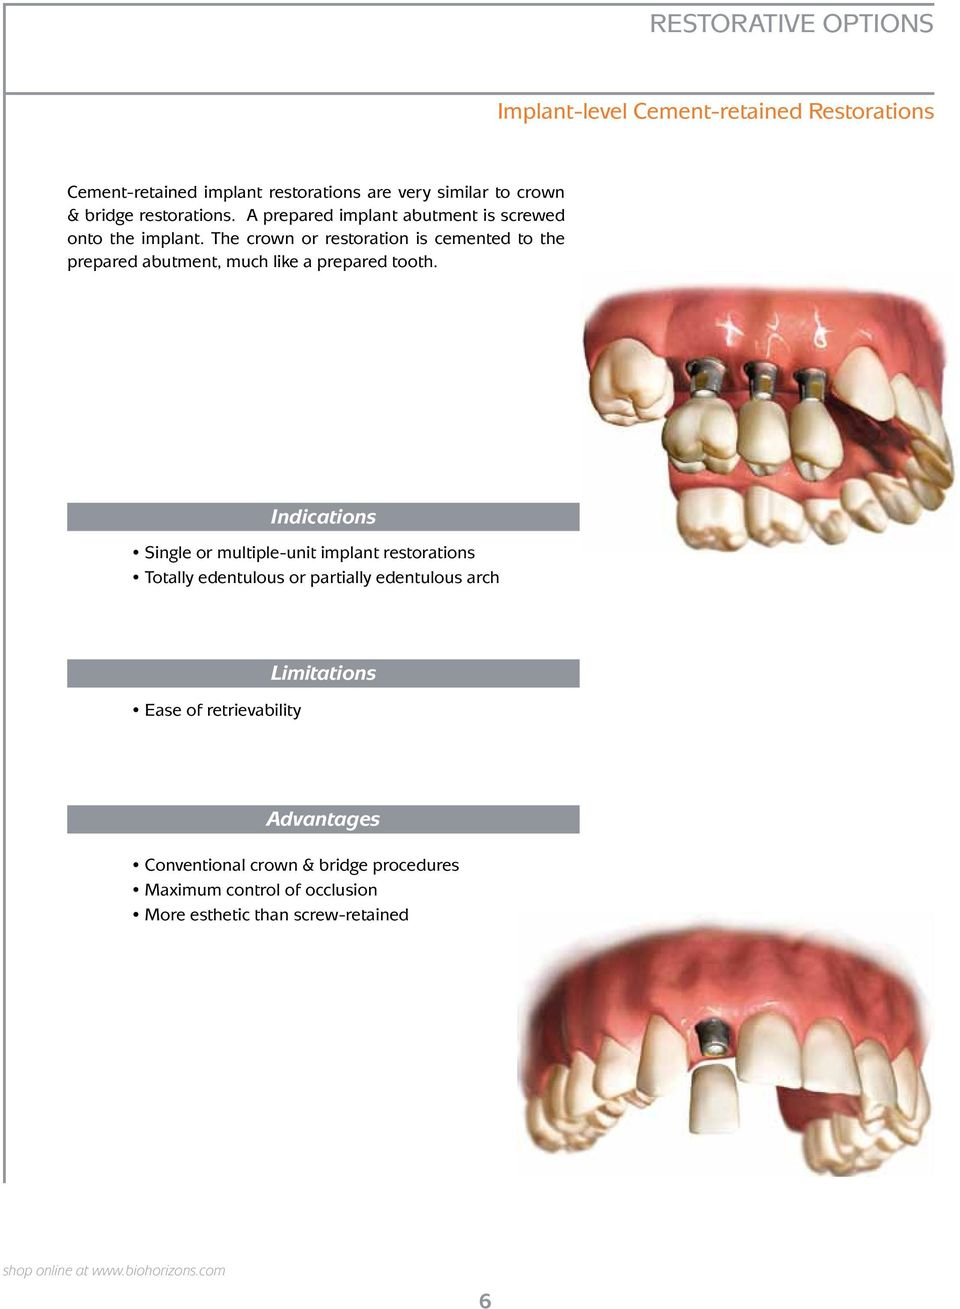 The crown or restoration is cemented to the prepared abutment, much like a prepared tooth.